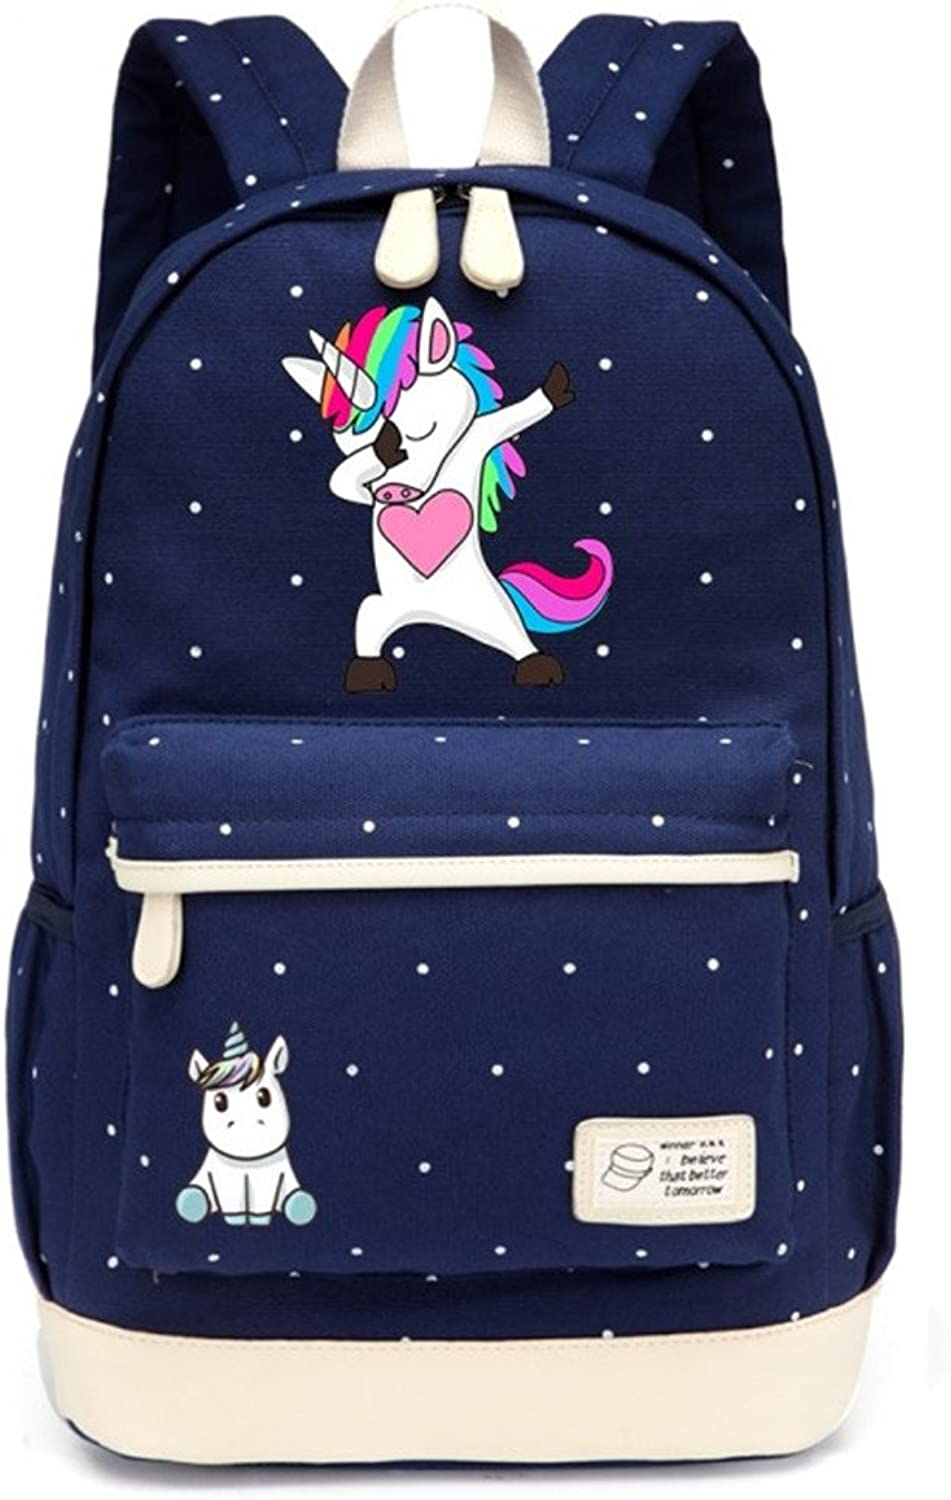 Cute Cartoon Unicorn Backpack Schoolbag Casual Teenagers Girl Women's School Travel Shoulder Bag 7